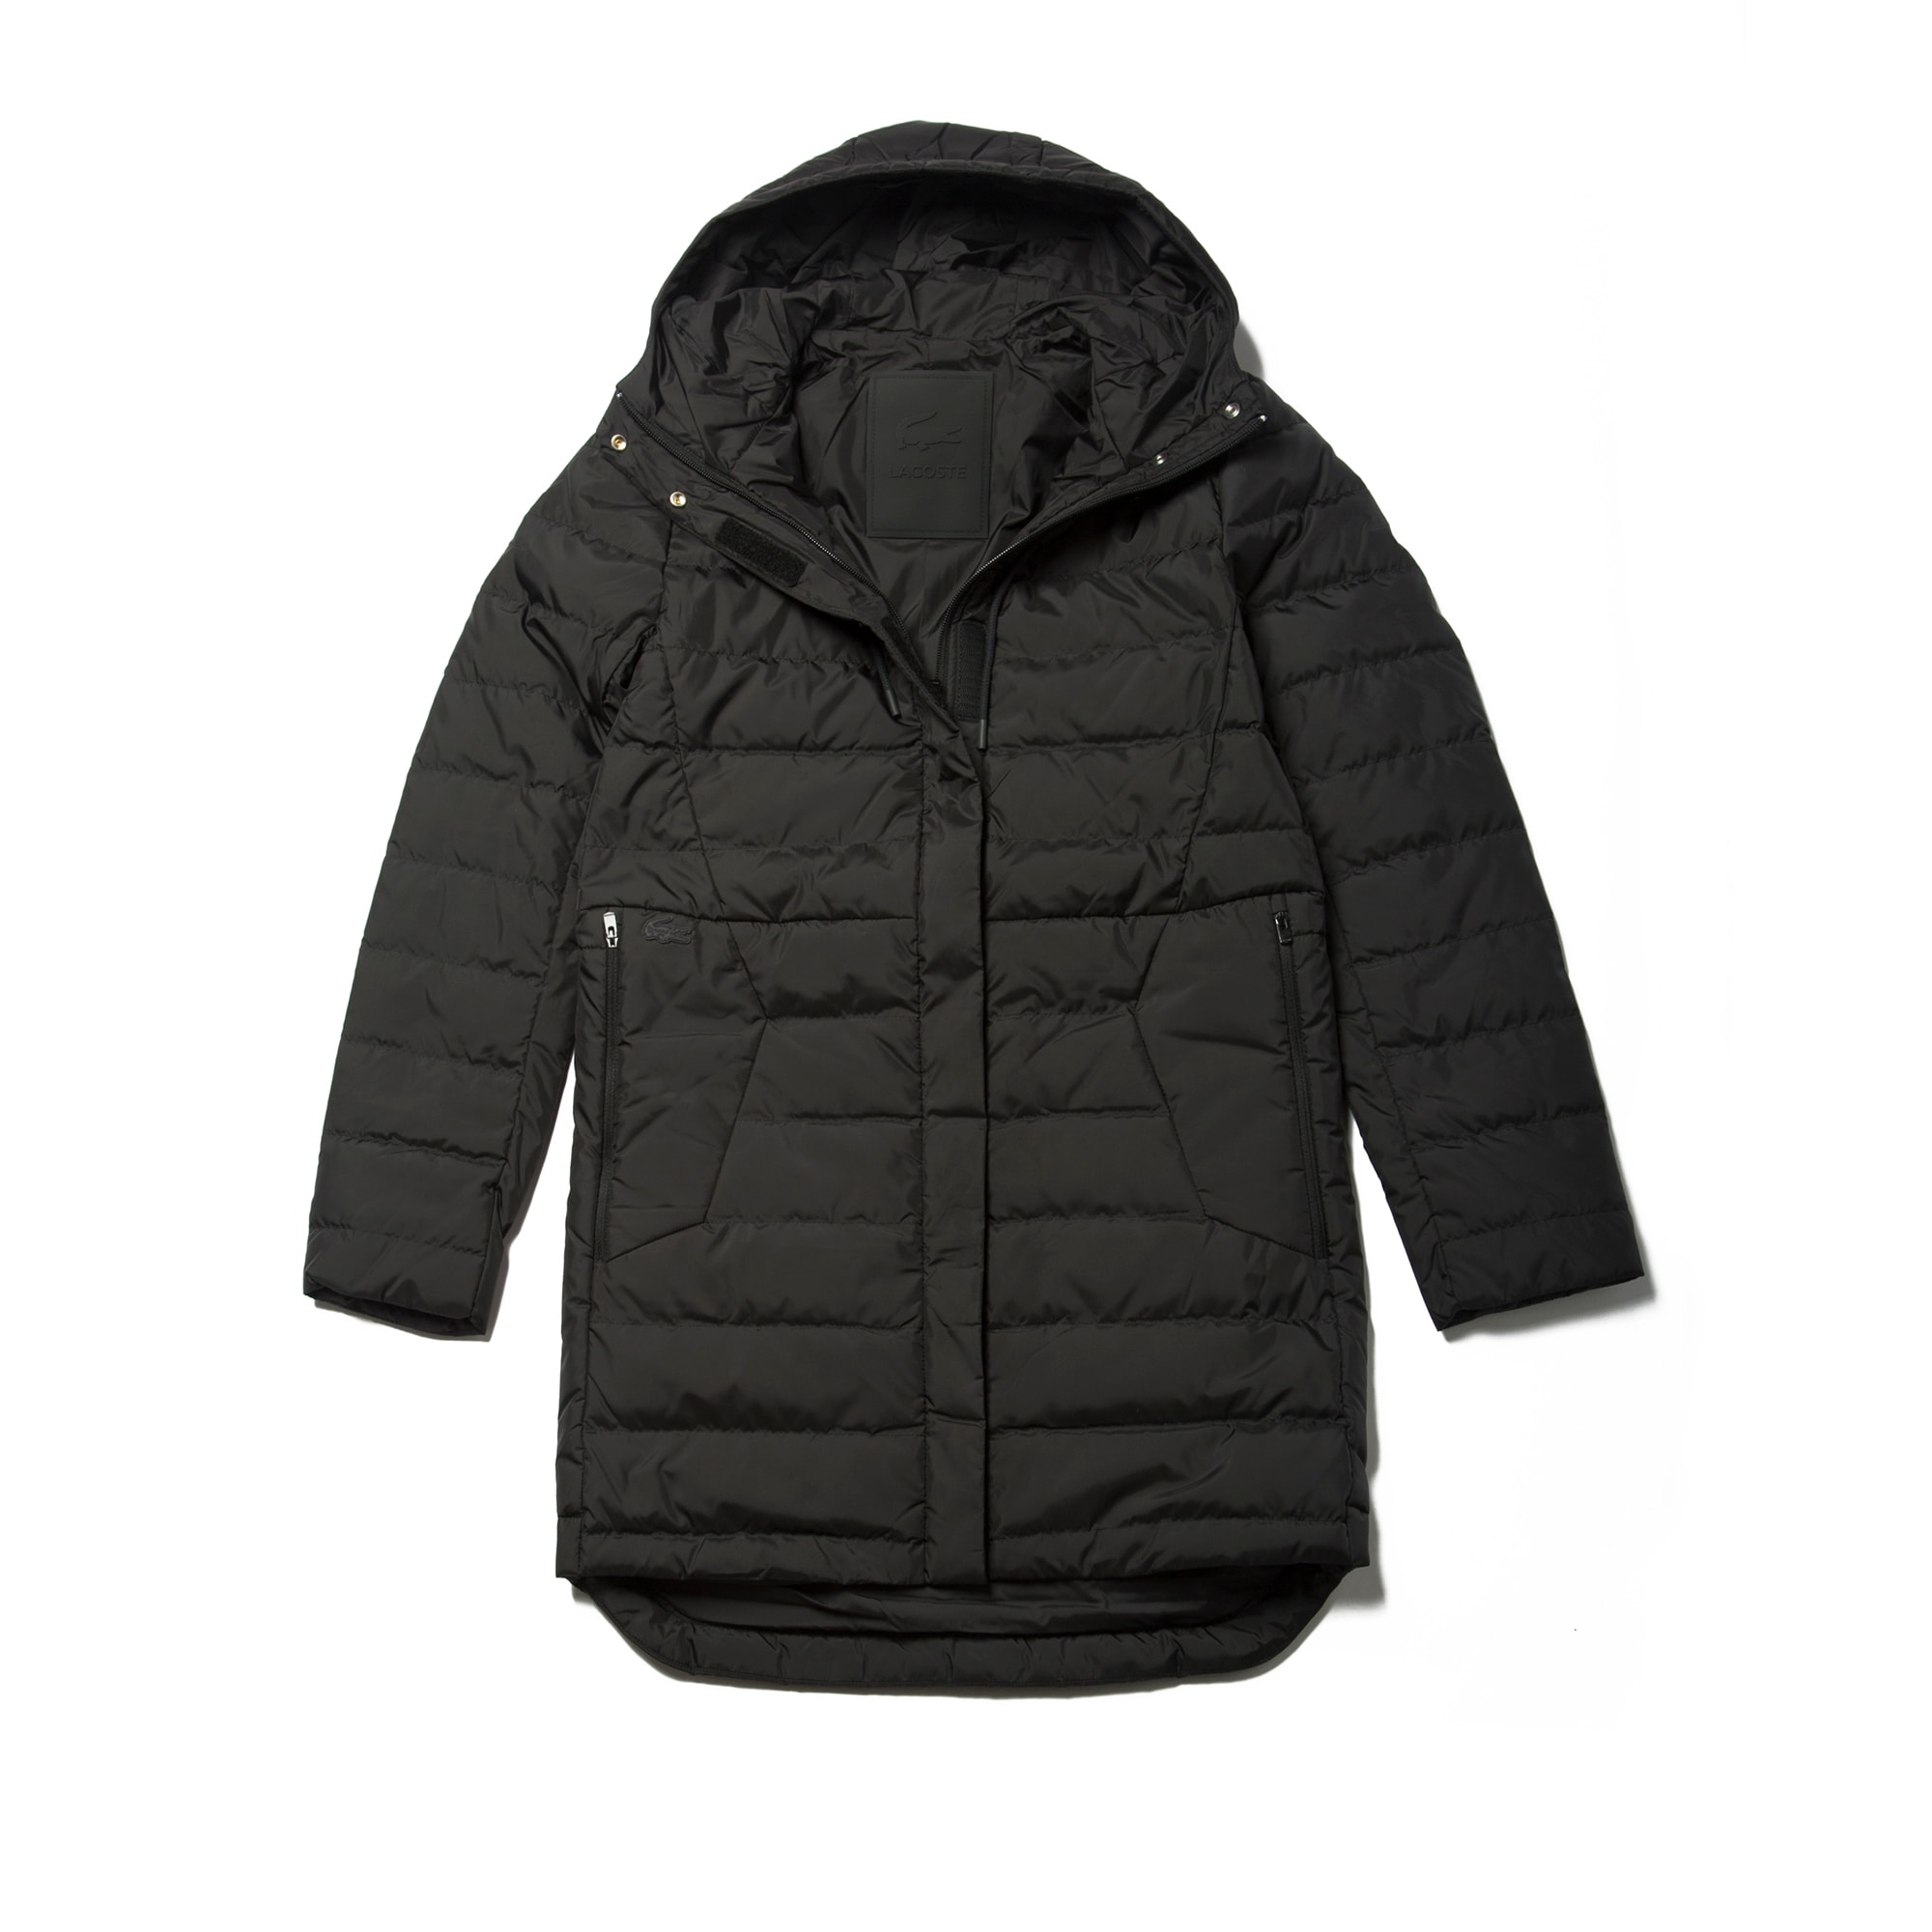 Women's Long Hooded Quilted Down Jacket | LACOSTE